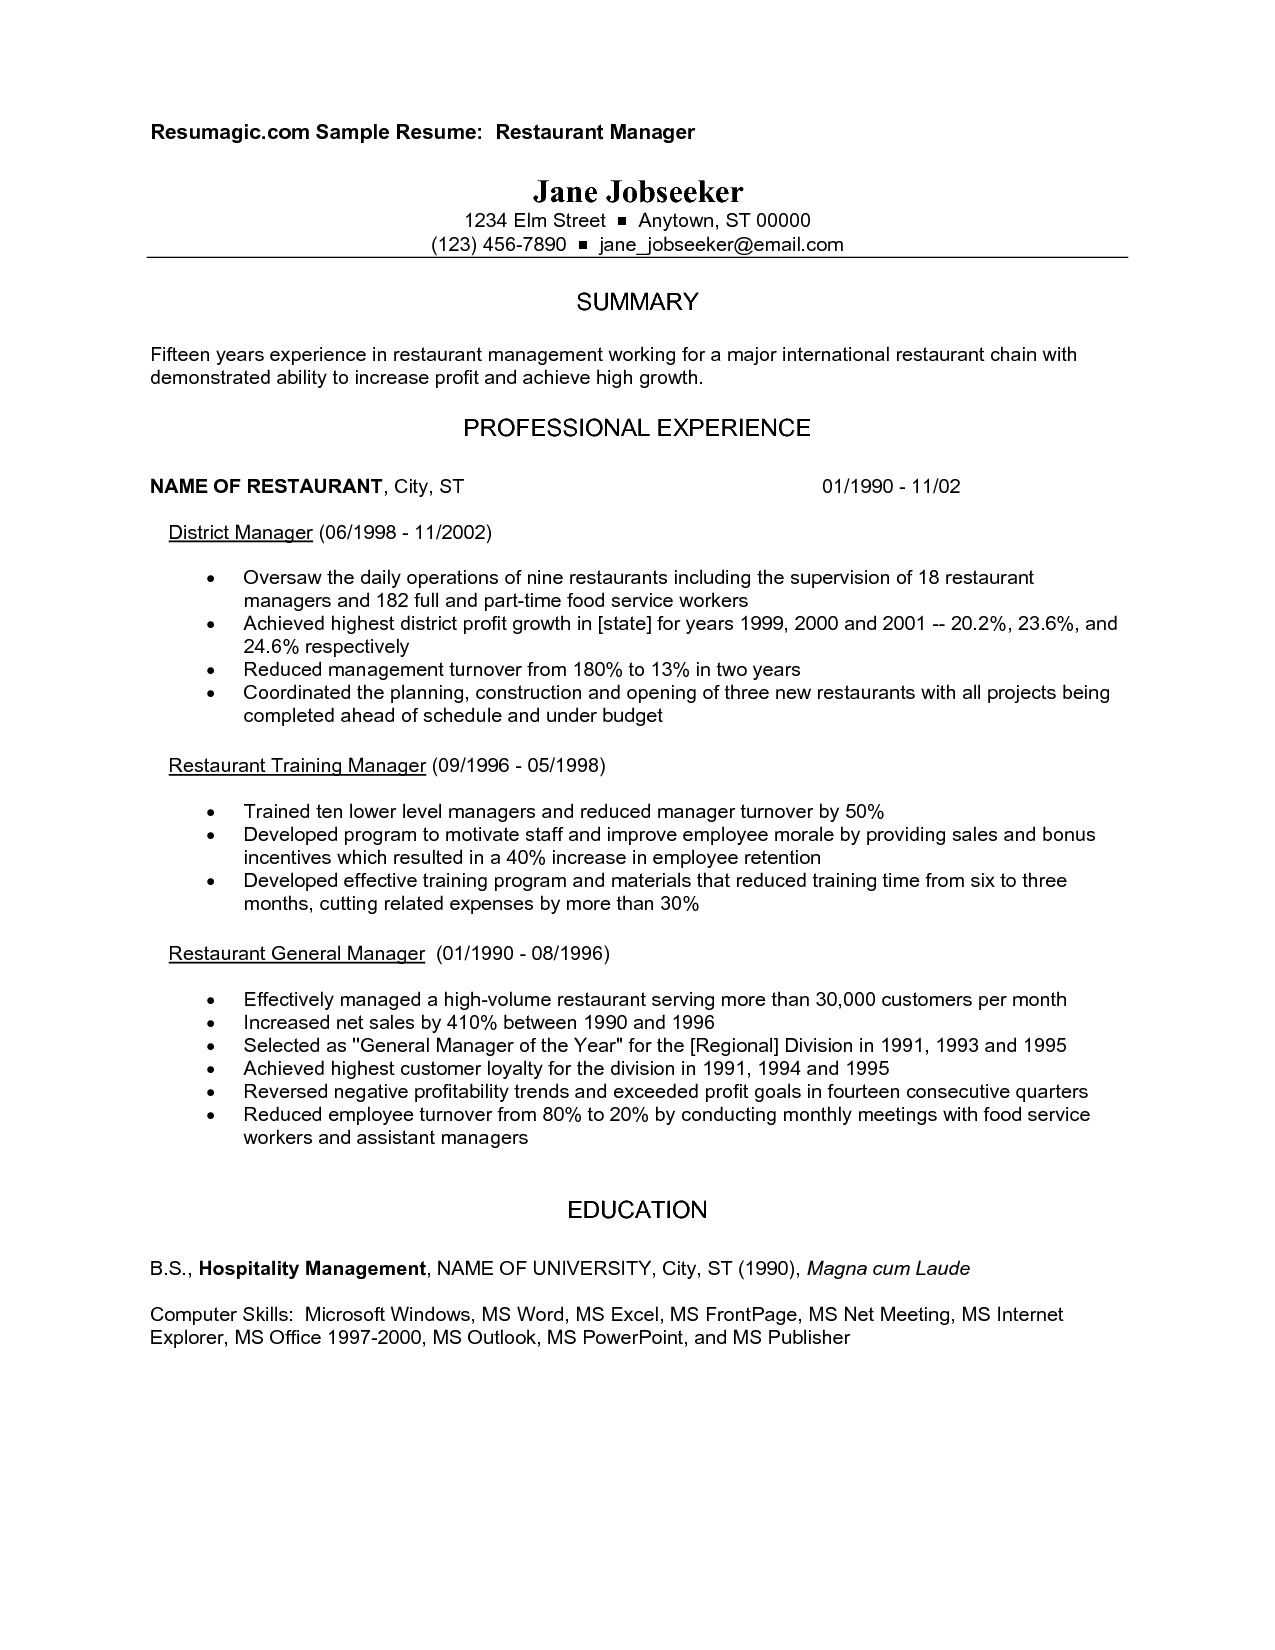 Server Resume Template Free Amusing Restaurant Manager Resume Example  Httpwwwresumecareer